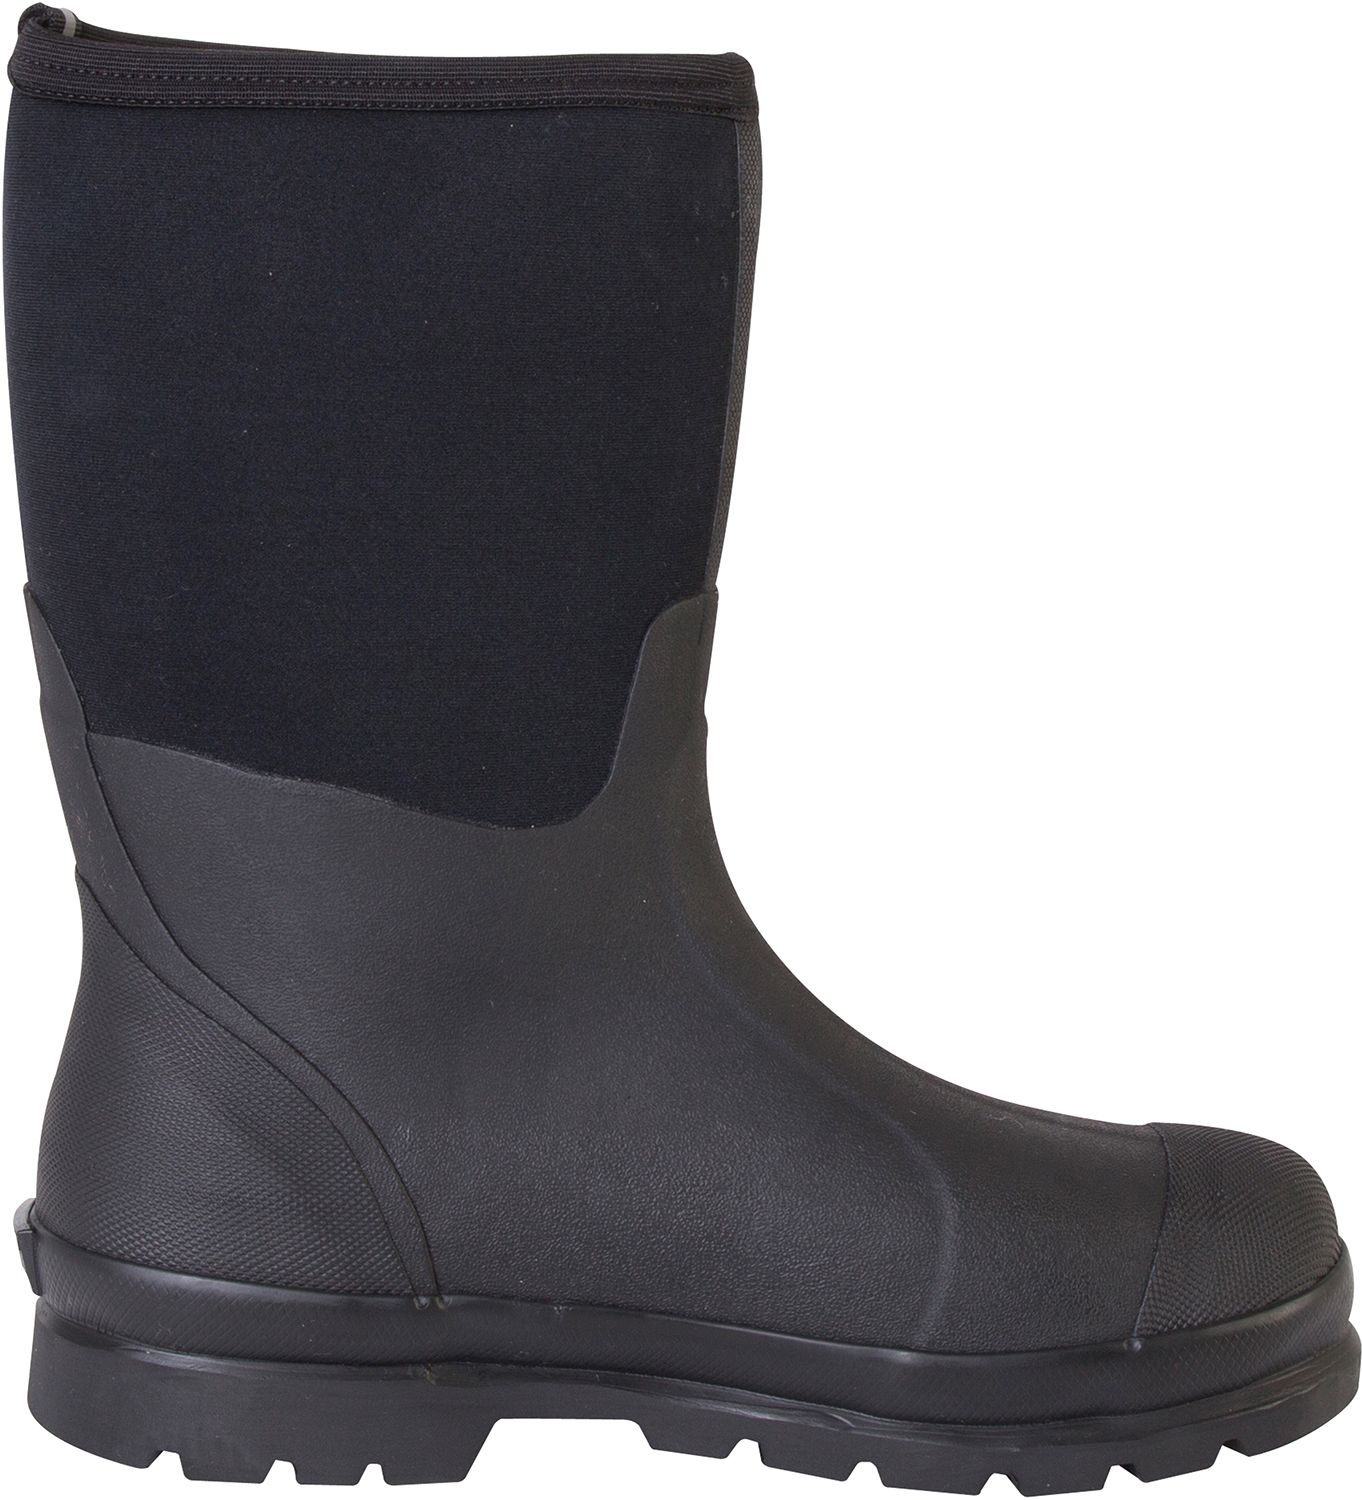 Muck Boot Men's Chore Mid Waterproof Work Boots| DICK'S Sporting Goods